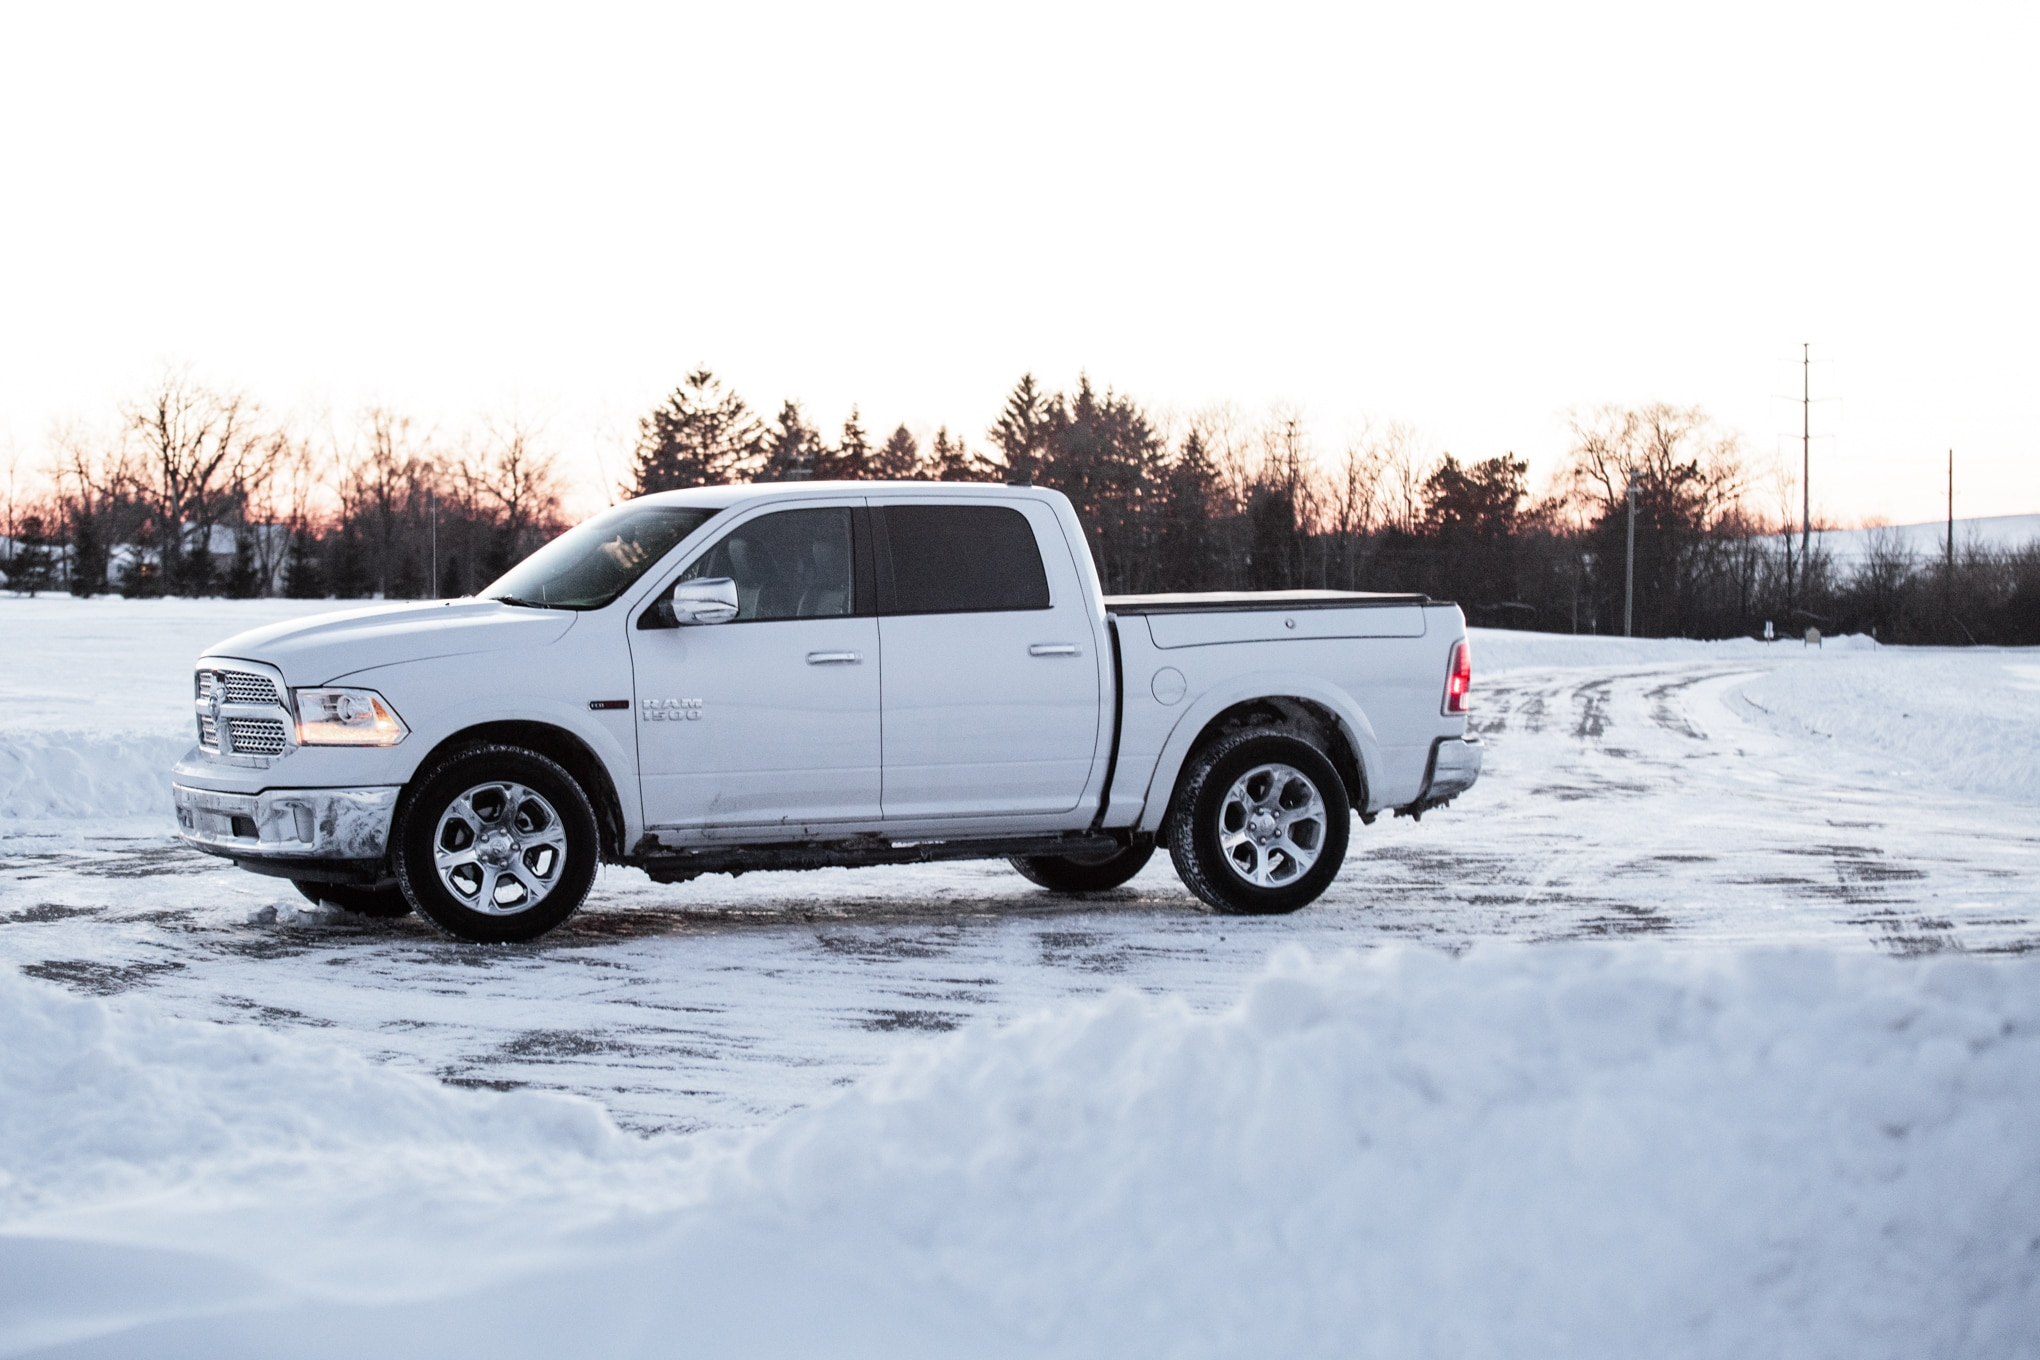 Ram Ecodiesel Hp >> 2014 Ram 1500 Ecodiesel: Around The Block - Automobile Magazine